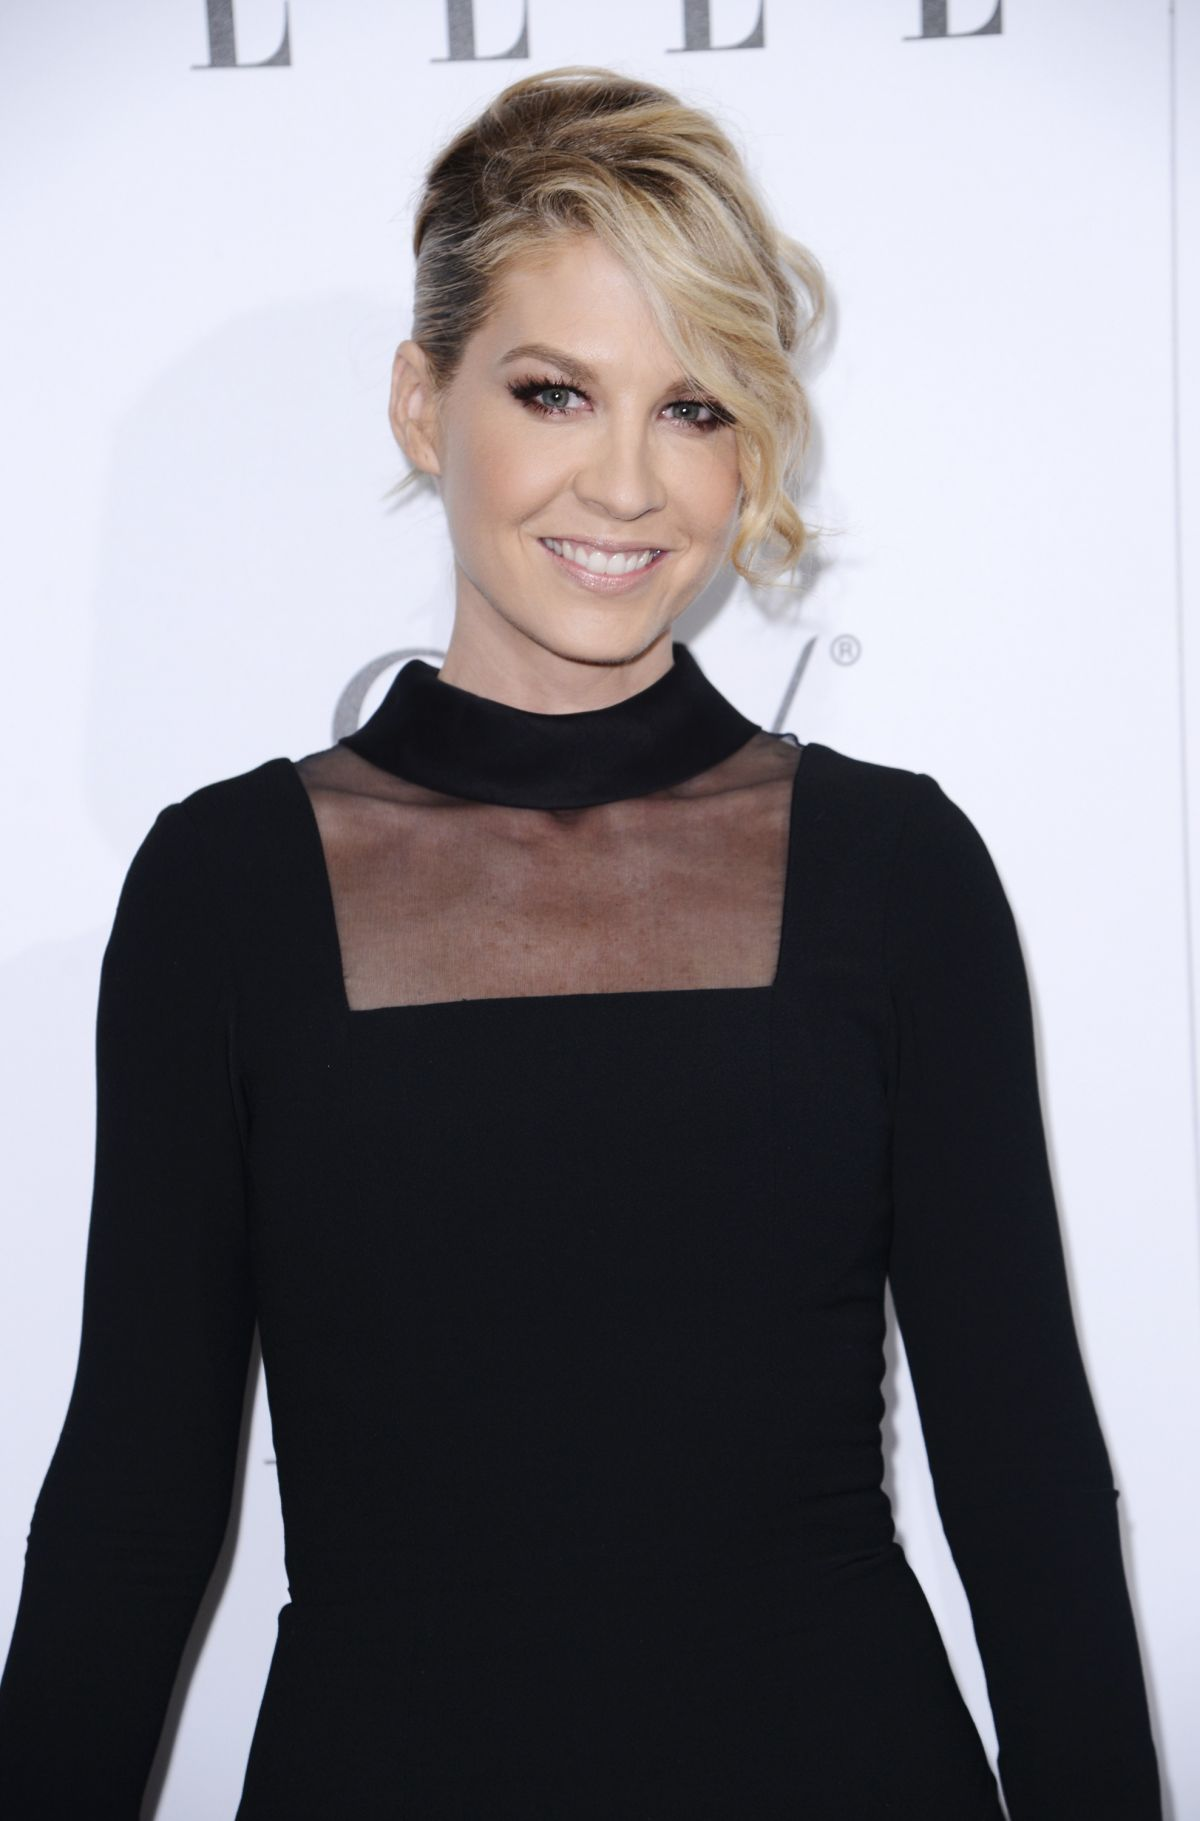 JENNA ELFMAN at Elle's Women in television Celebration in Hollywood